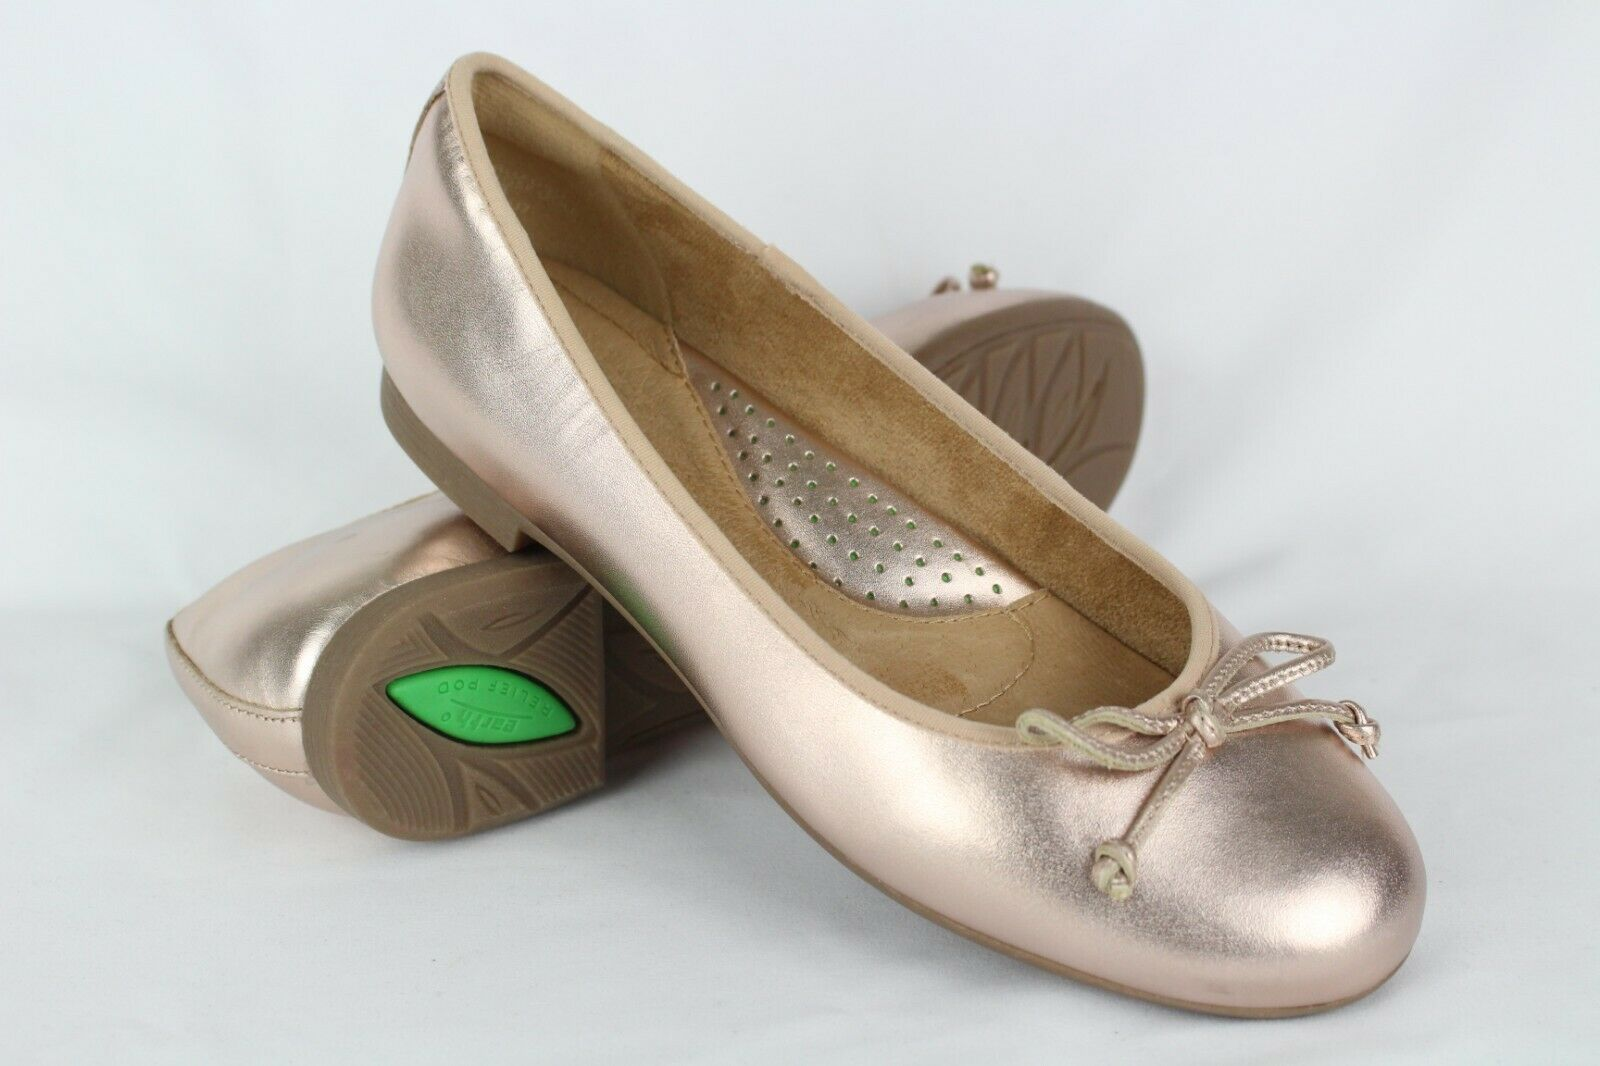 New Earth shoes Women's Allegro Ballet Flats Size 7m pink gold